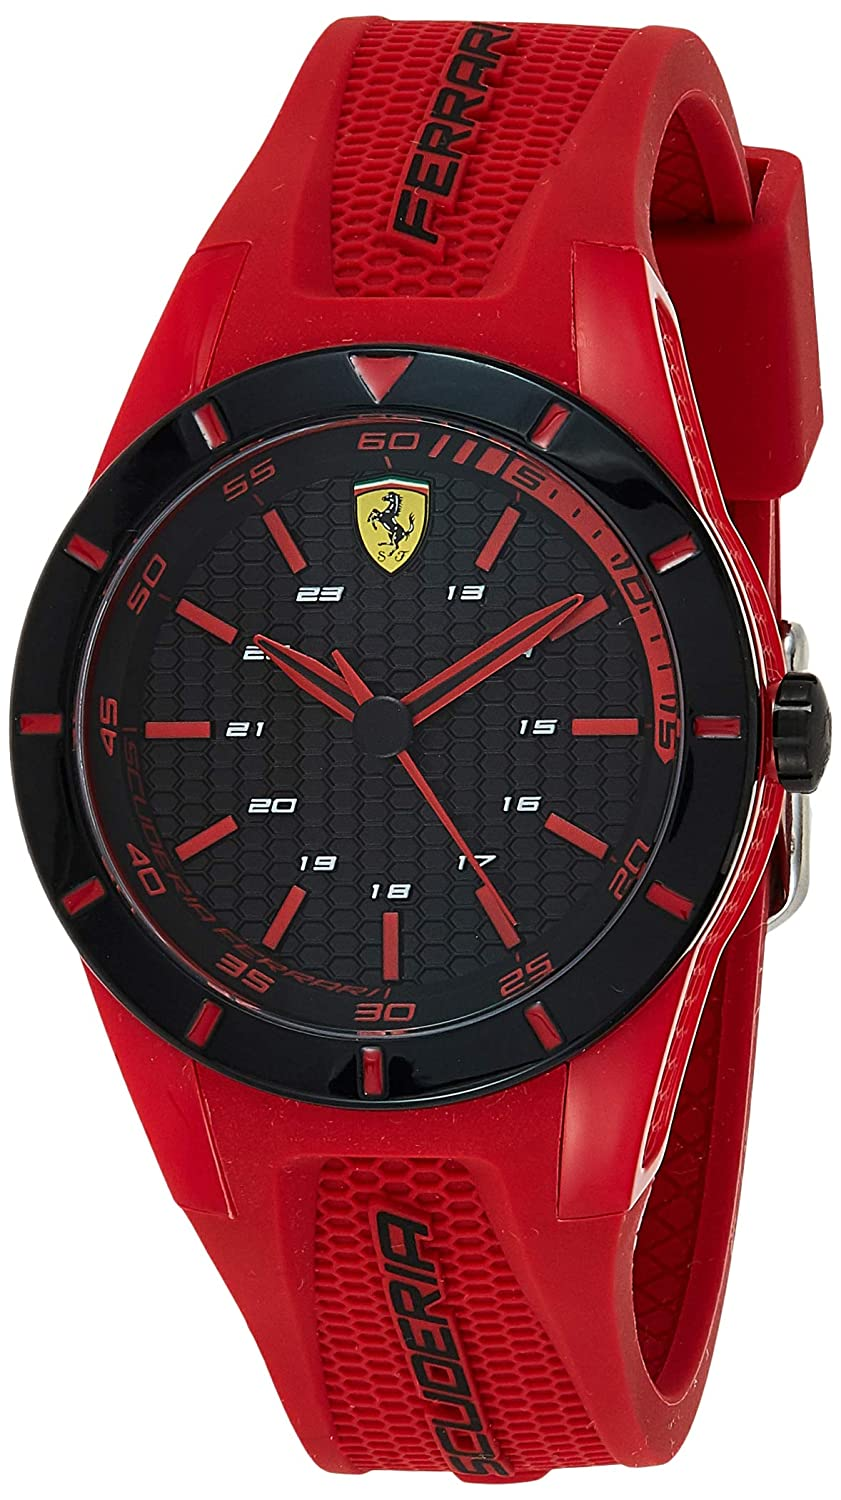 Ferrari Men RedRev Stainless Steel Quartz Watch with Rubber Strap red 20 Model 0840005